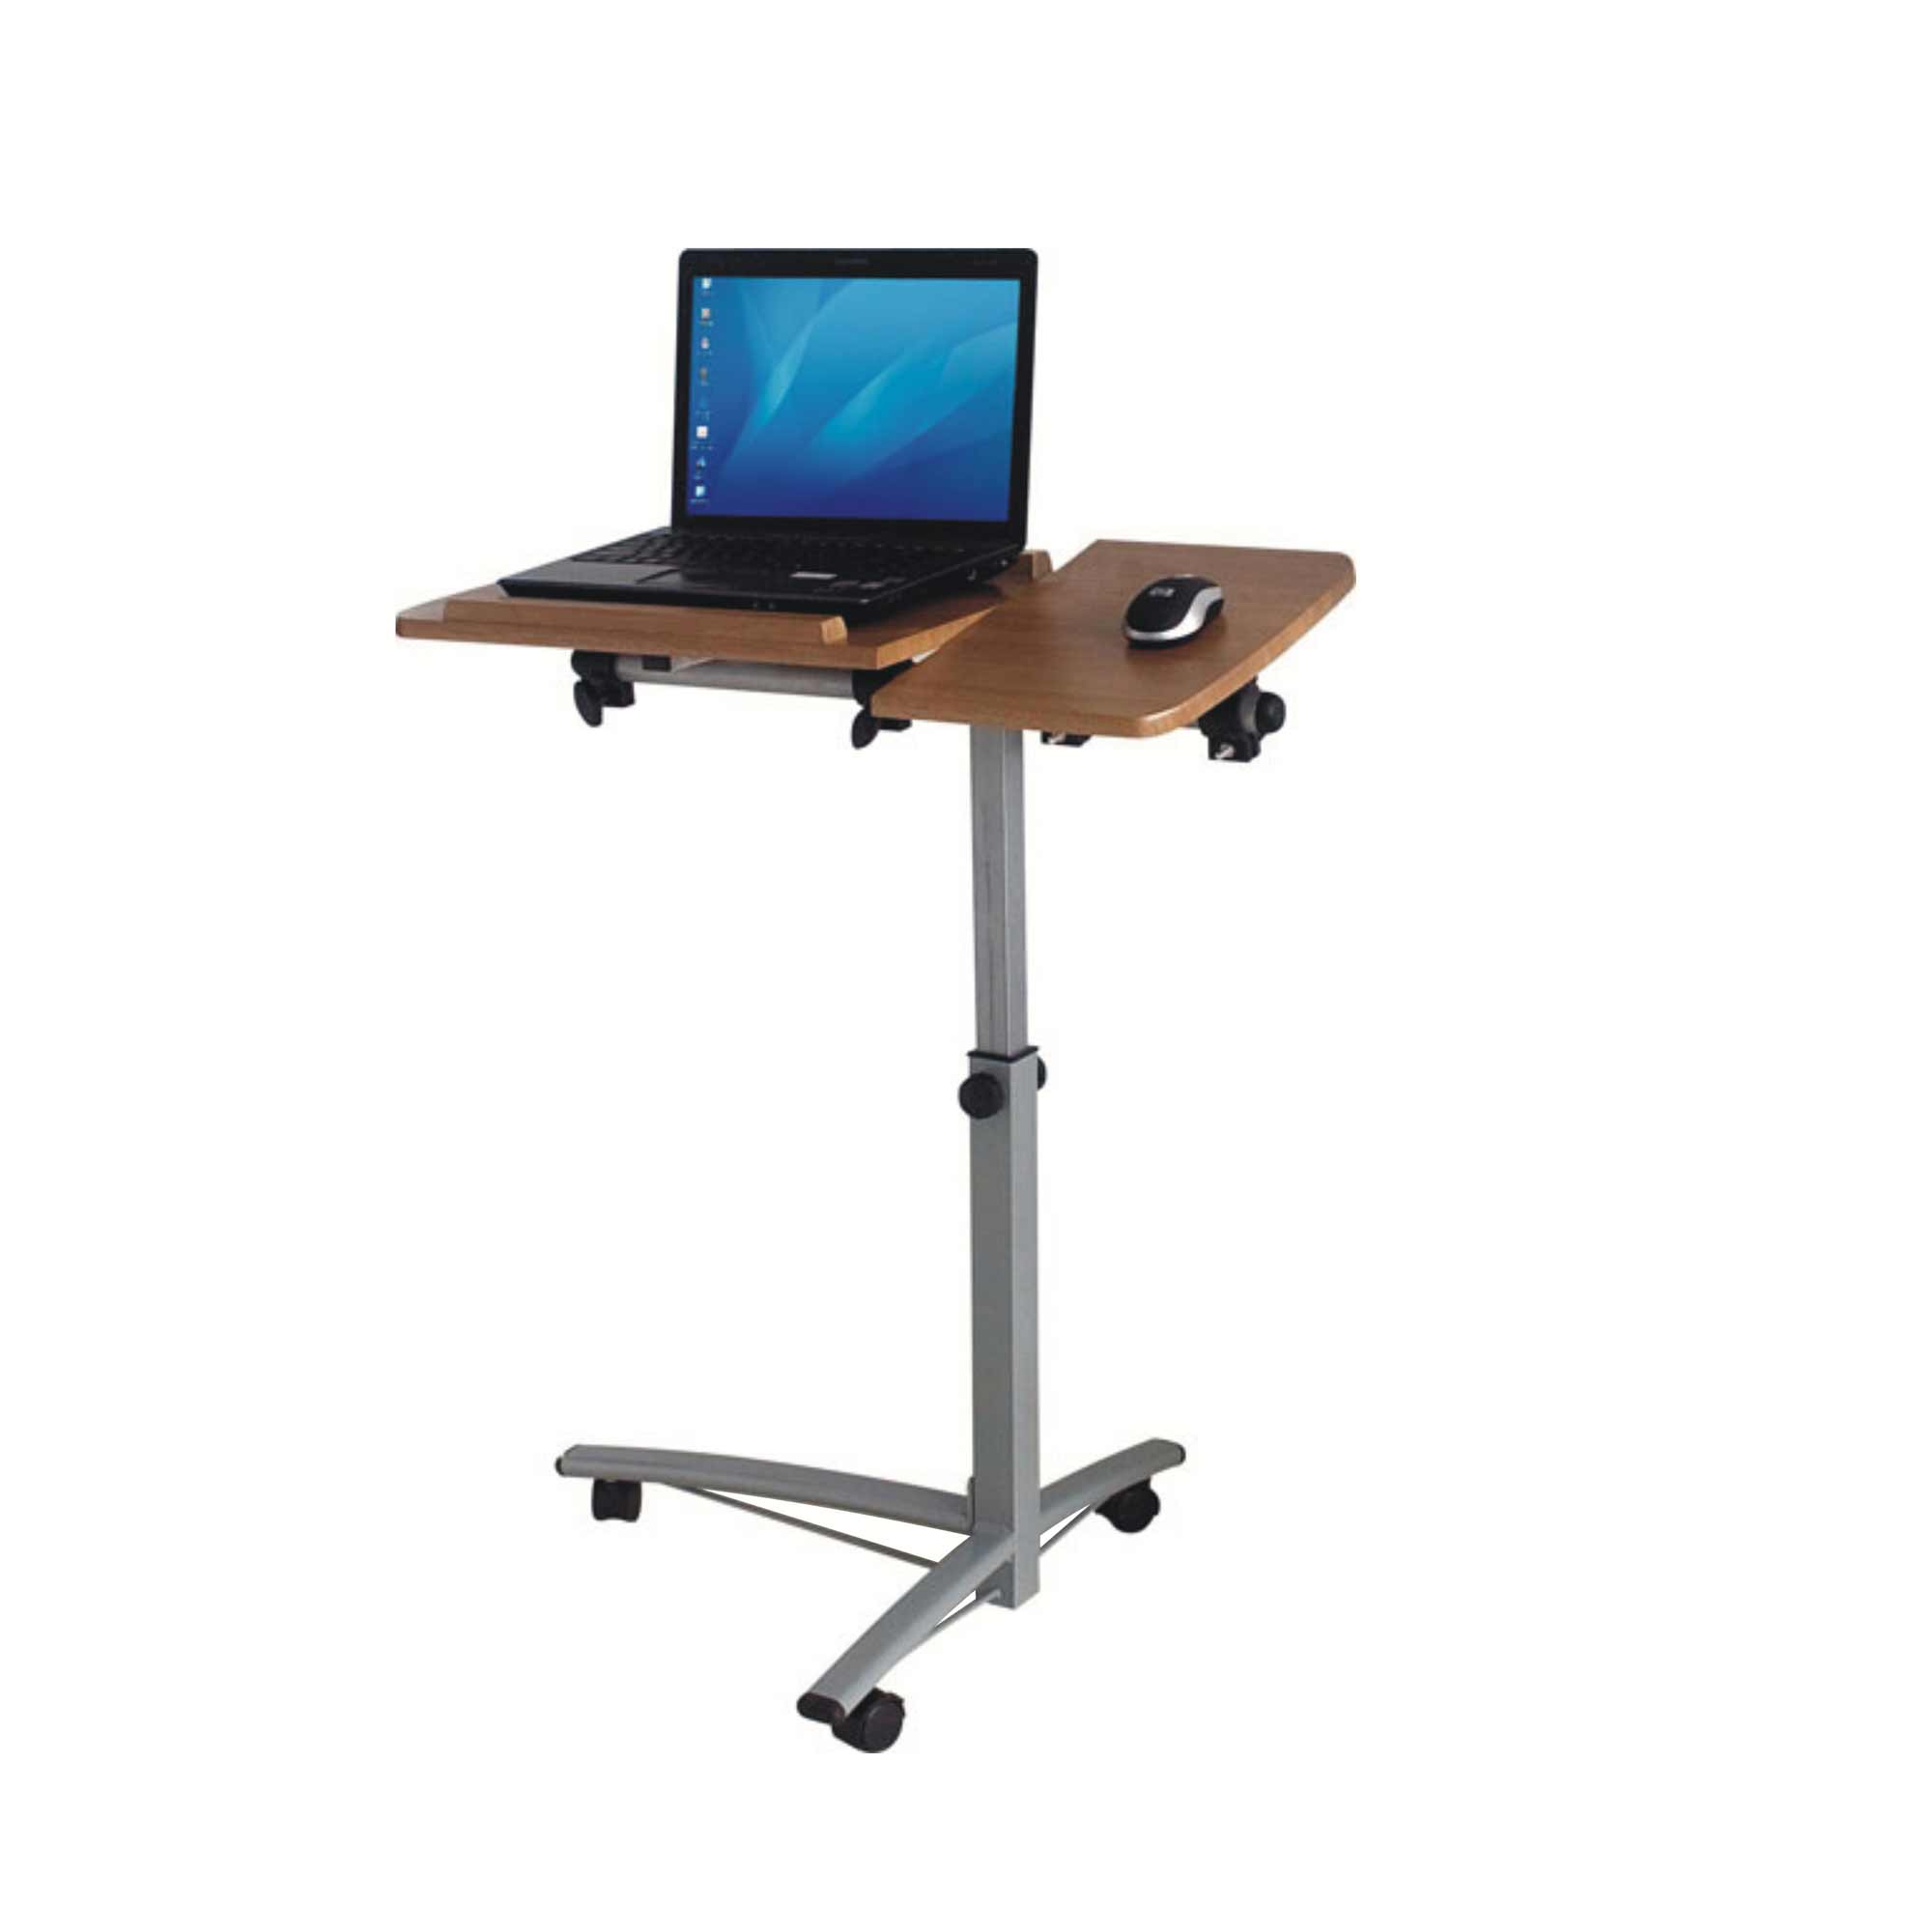 Folding Laptop Desk Benefits